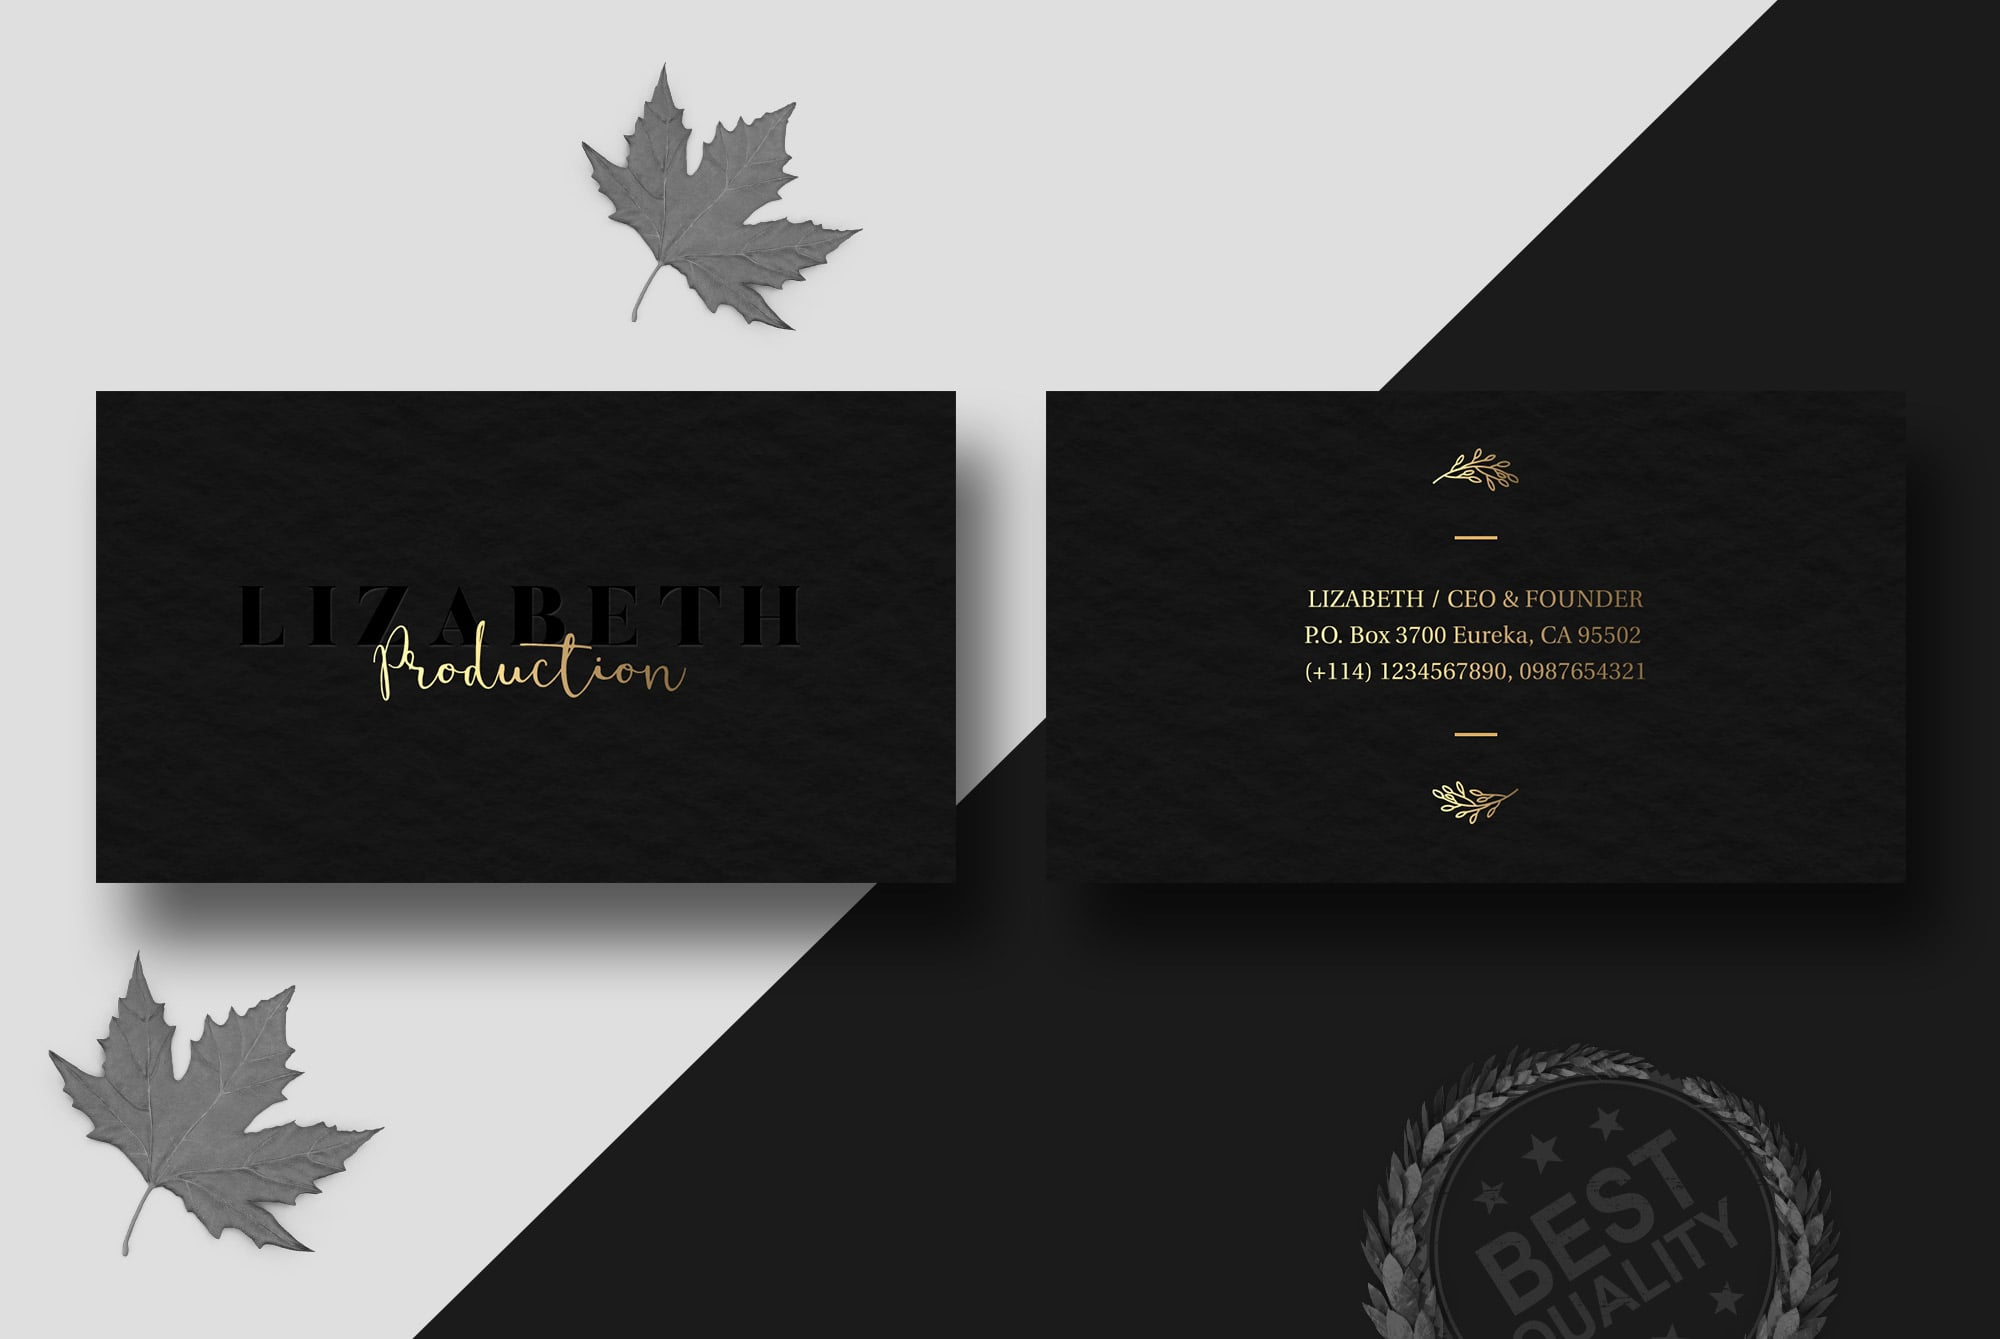 Dark business card design free psd freebiedesign download dark business card design free psd this business card psd template have 300dpi resolutions you can print this or made your changes as per your colourmoves